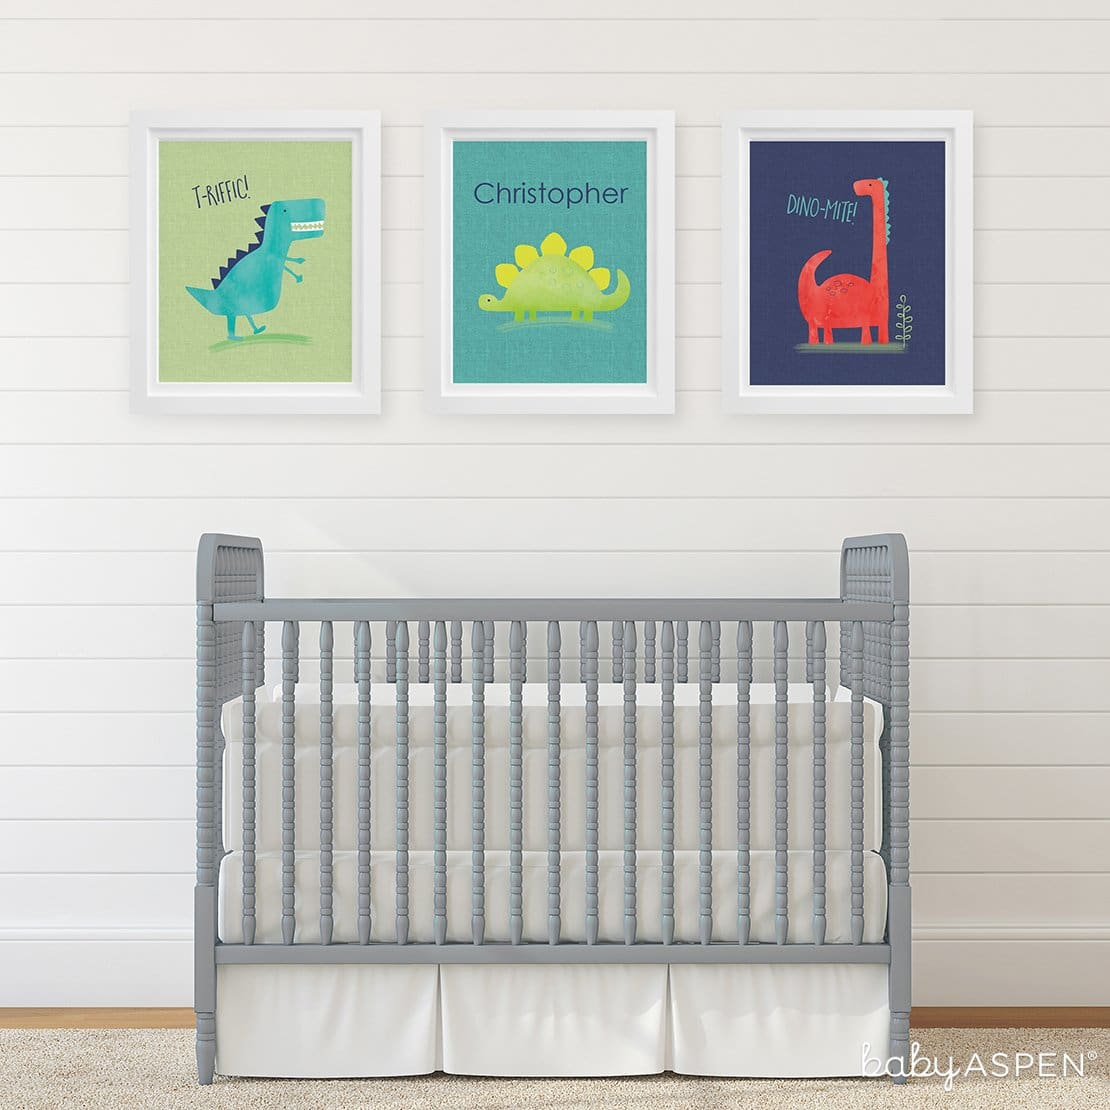 6 Dino-Mite Gifts for Your Dino-Obsessed Baby